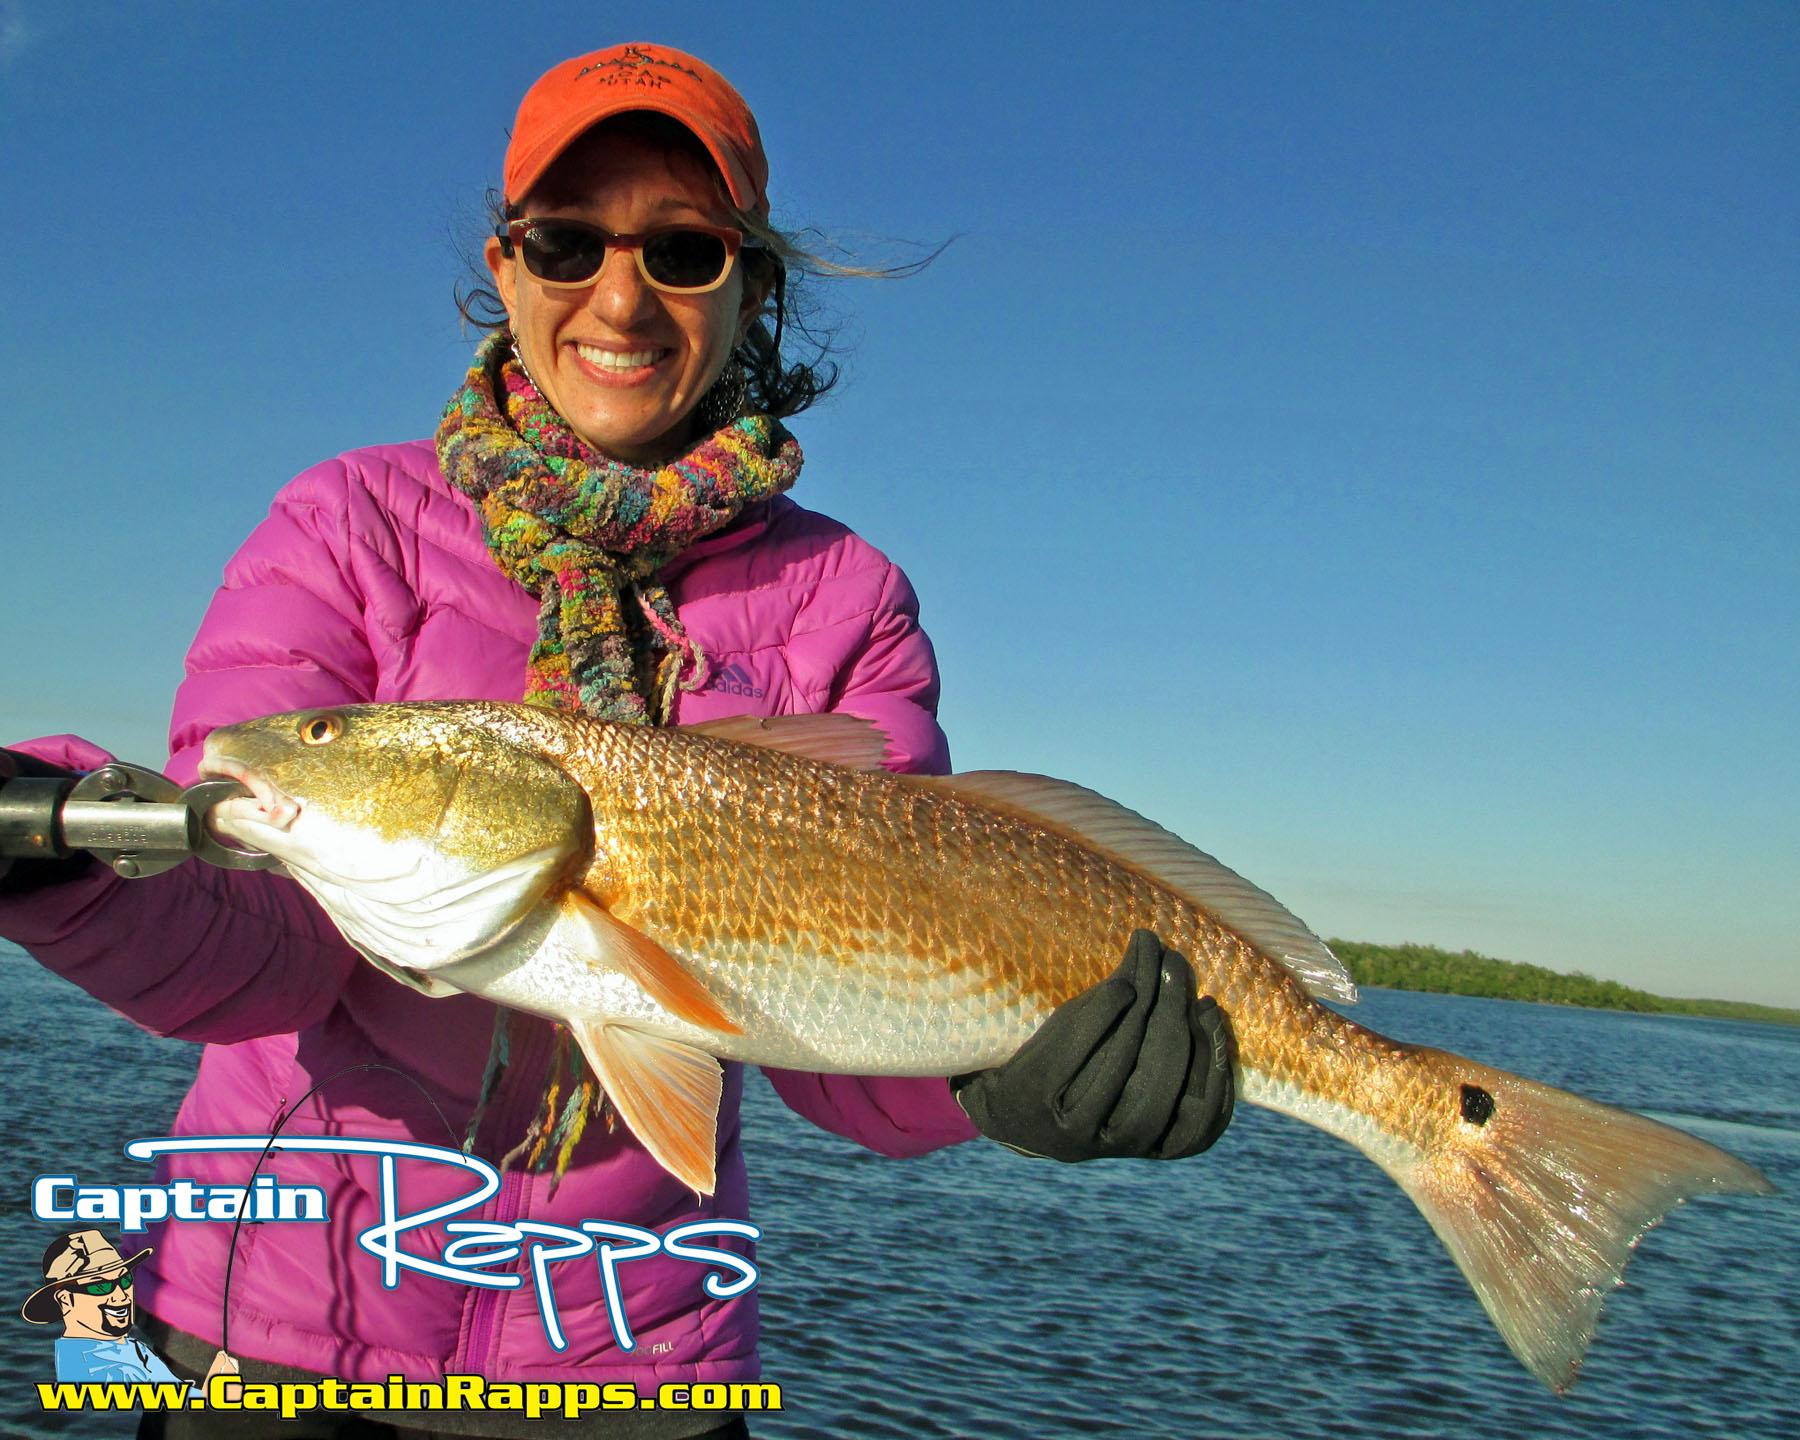 redfish everglades city chokoloskee fishing charters captain rapps